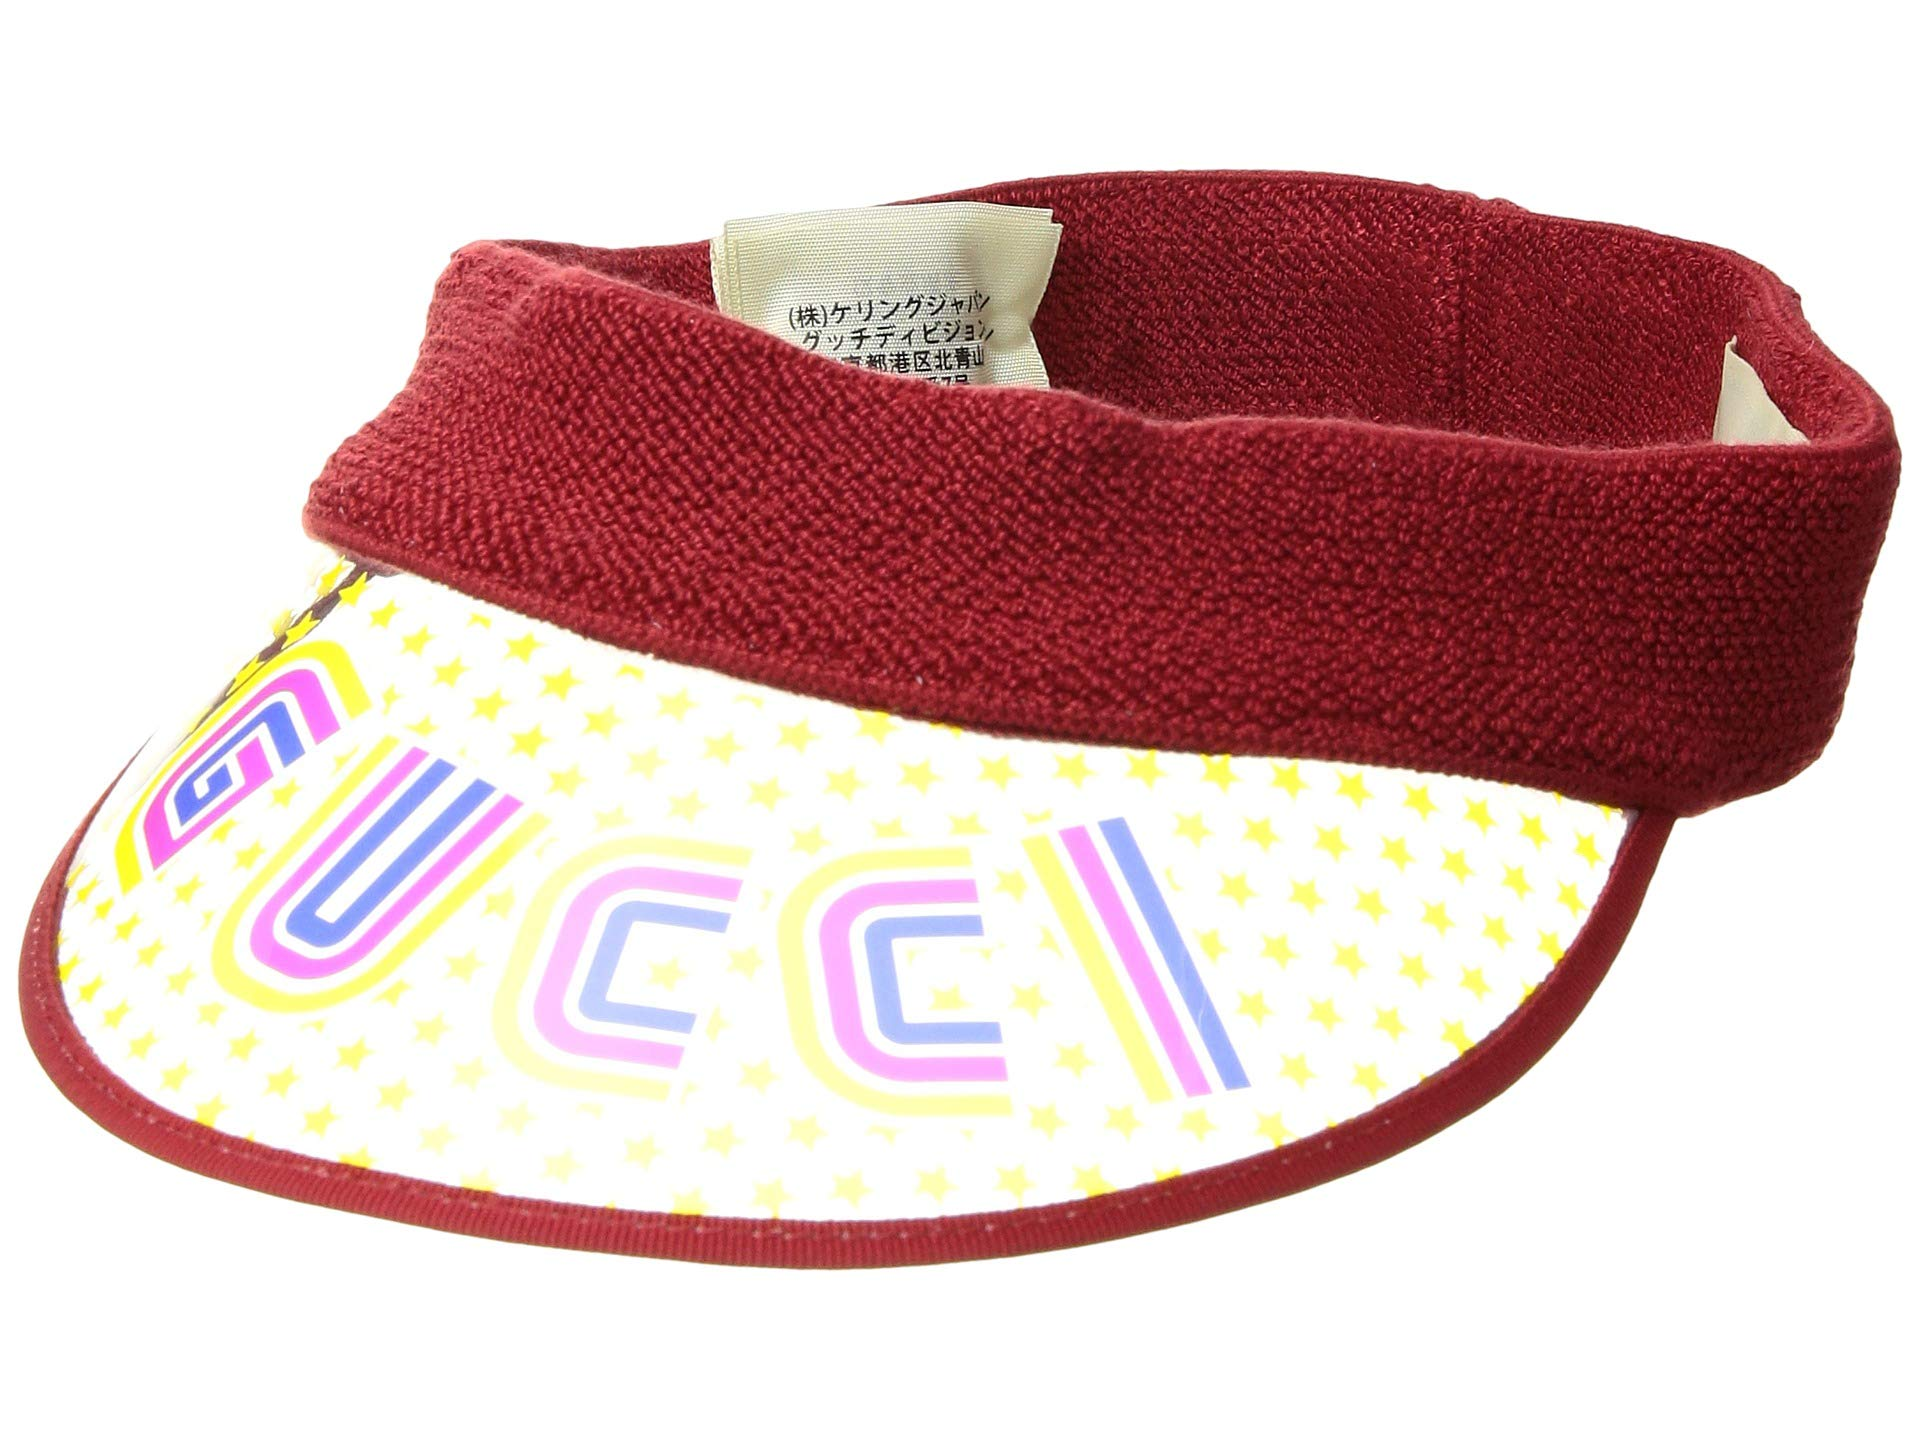 d36ff69a Gucci Kids Tennis Hat 5589823HG41 (Little Kids/Big Kids) at Luxury ...